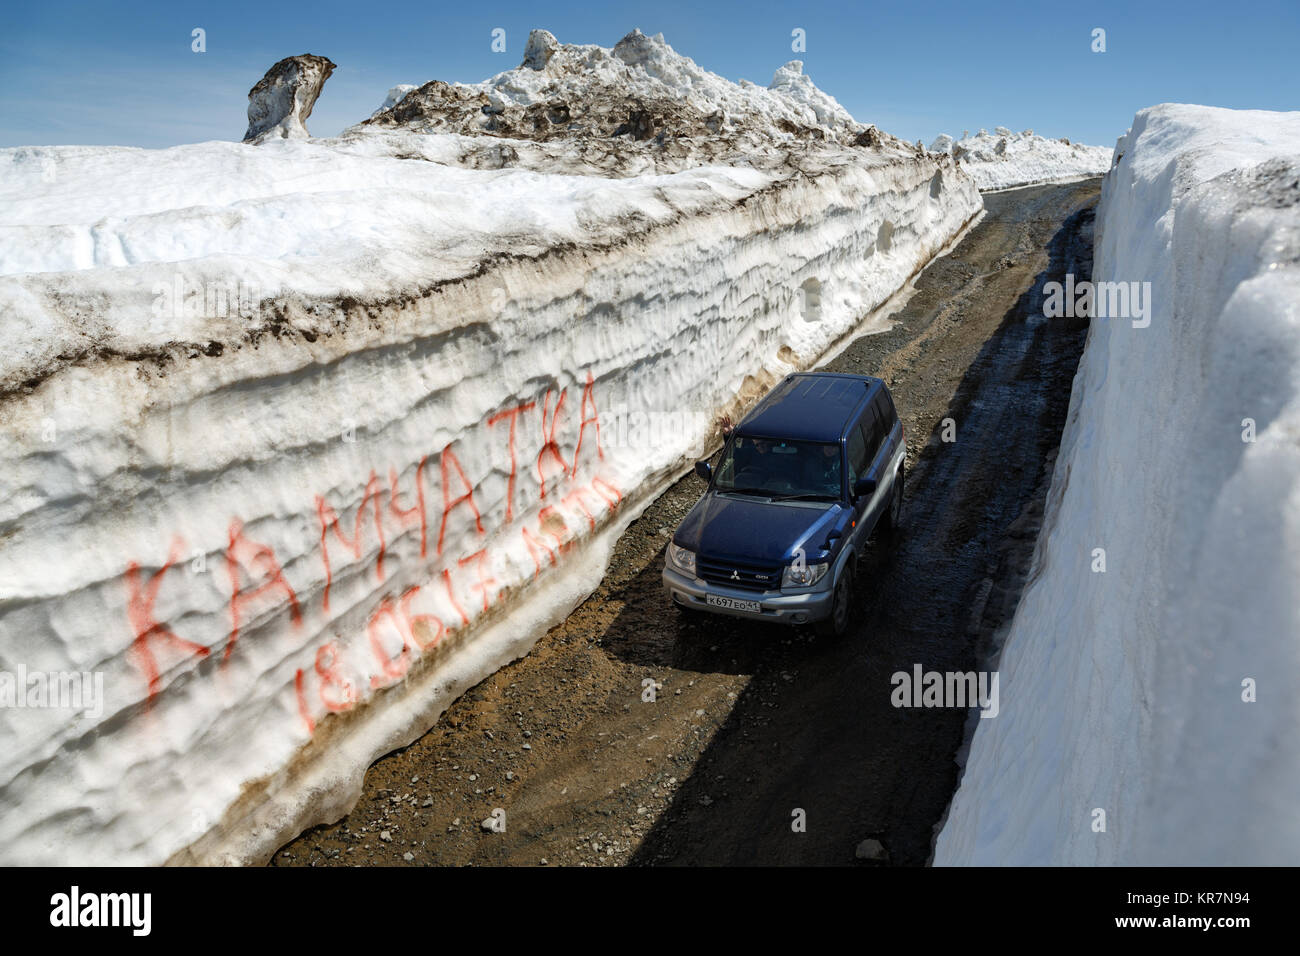 Kamchatka Peninsula, Russia: Japanese off-road car Mitsubishi driving on mountain road in snow tunnel surrounded - Stock Image